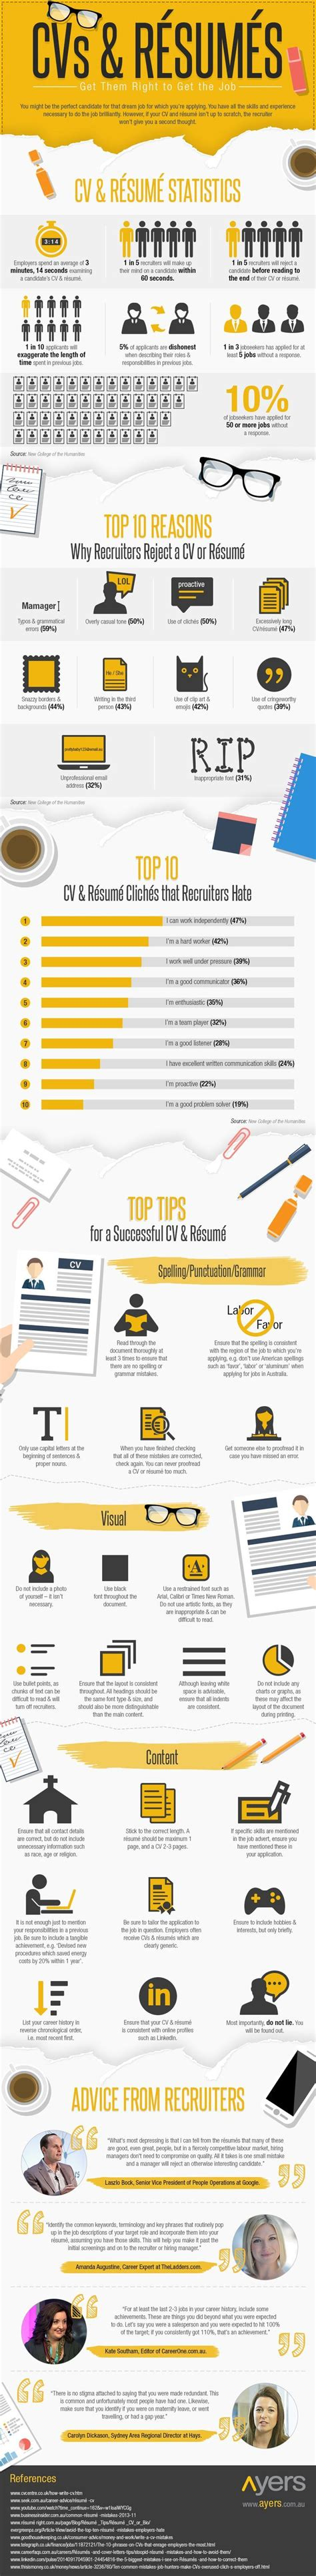 Infographic Resume App 1207 best infographic visual resumes images on